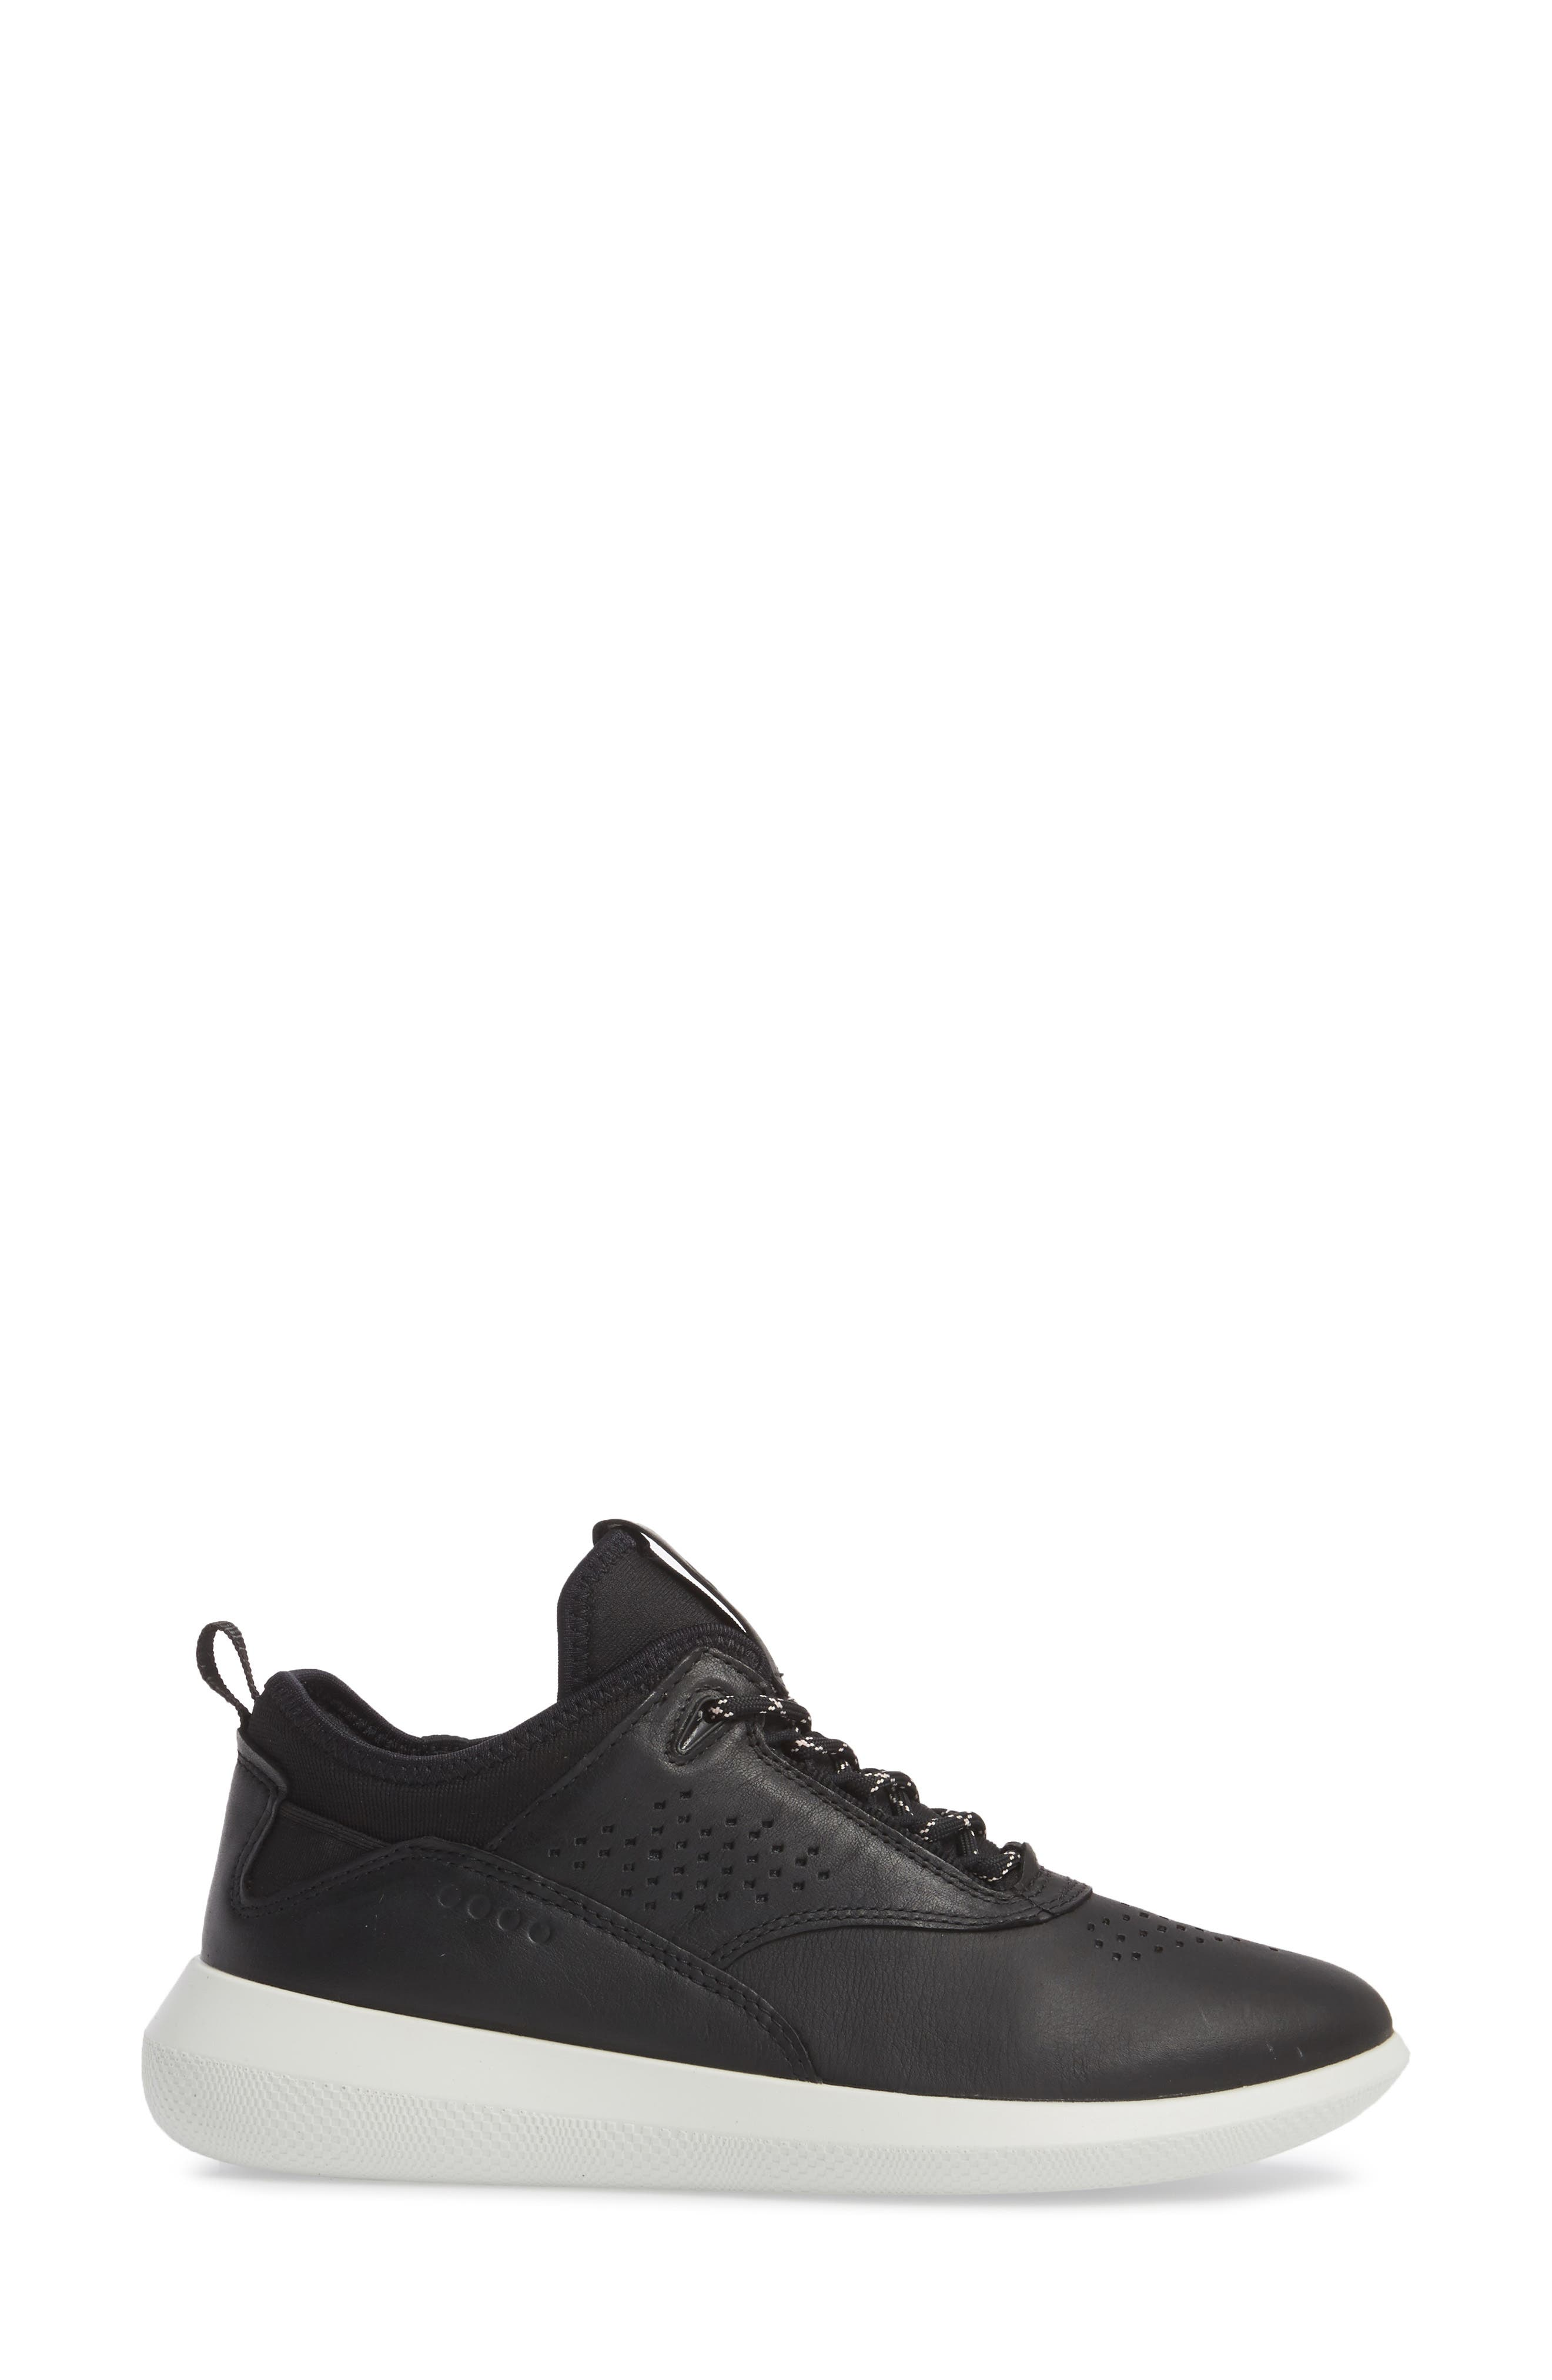 Scinapse Sneaker,                             Alternate thumbnail 3, color,                             Black Leather